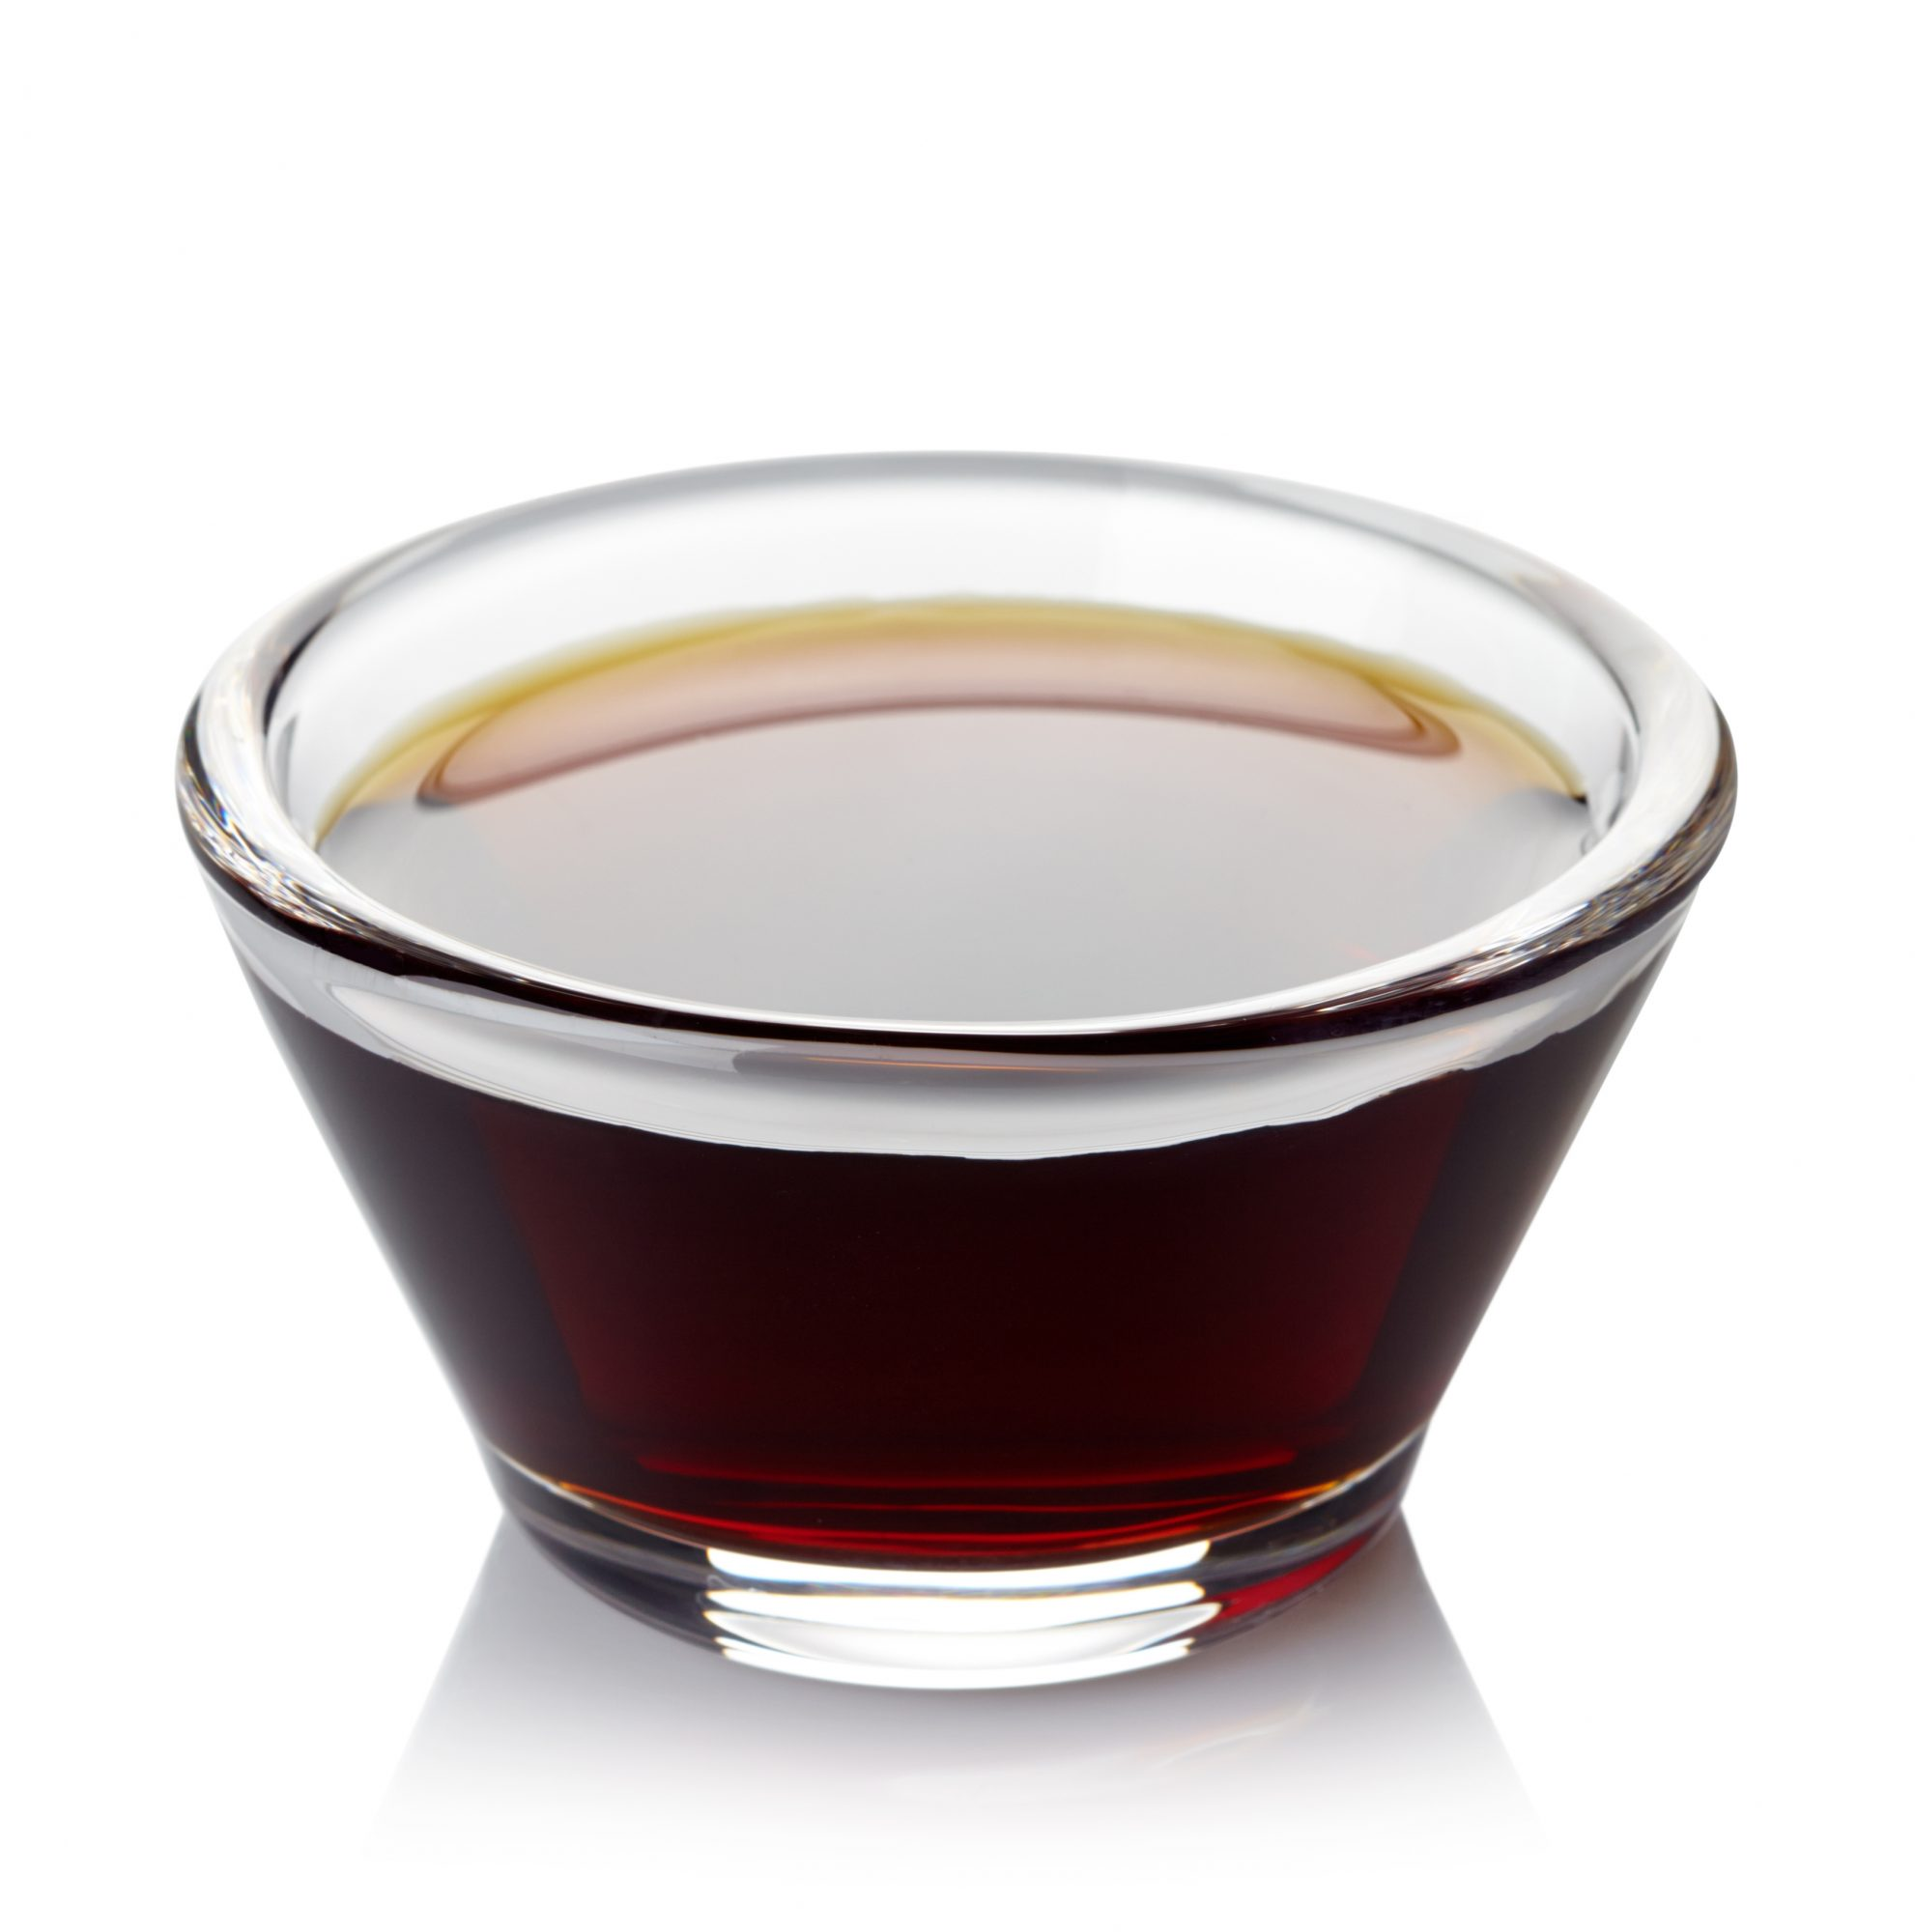 <p>Bowl of soy sauce isolated on white background</p>